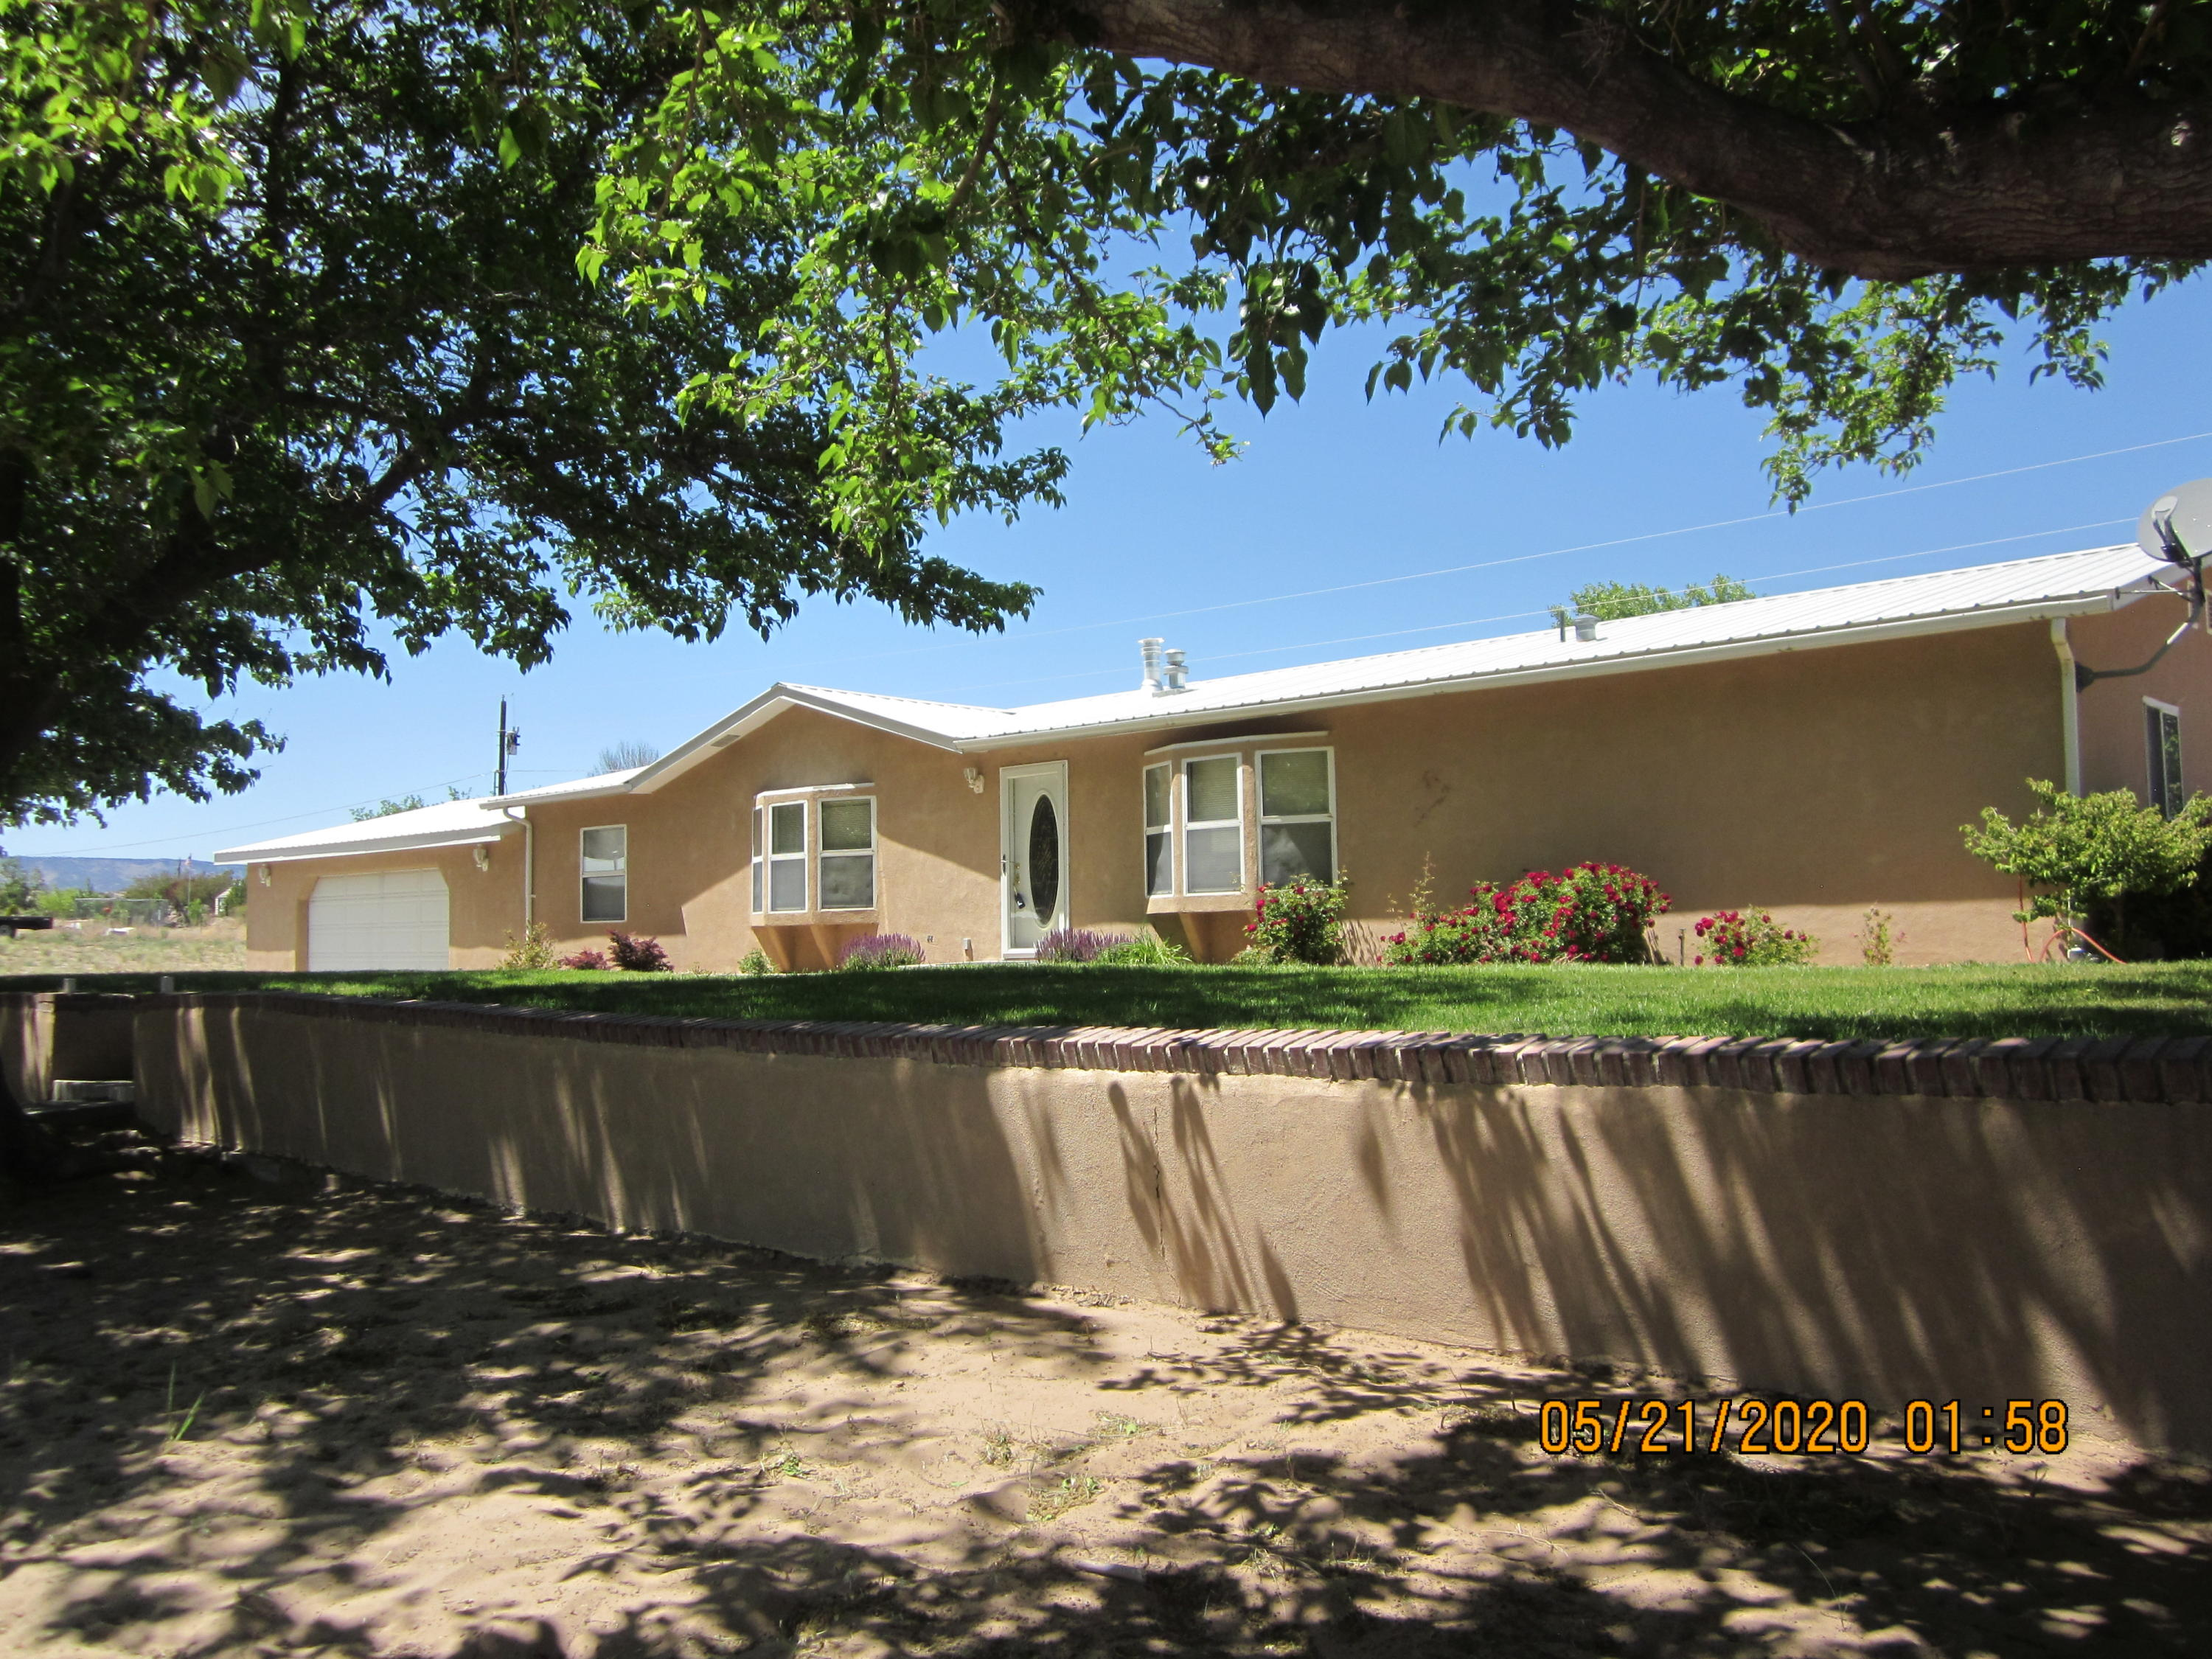 19 PRIVATE DRIVE 1545A Property Photo - Hernandez, NM real estate listing